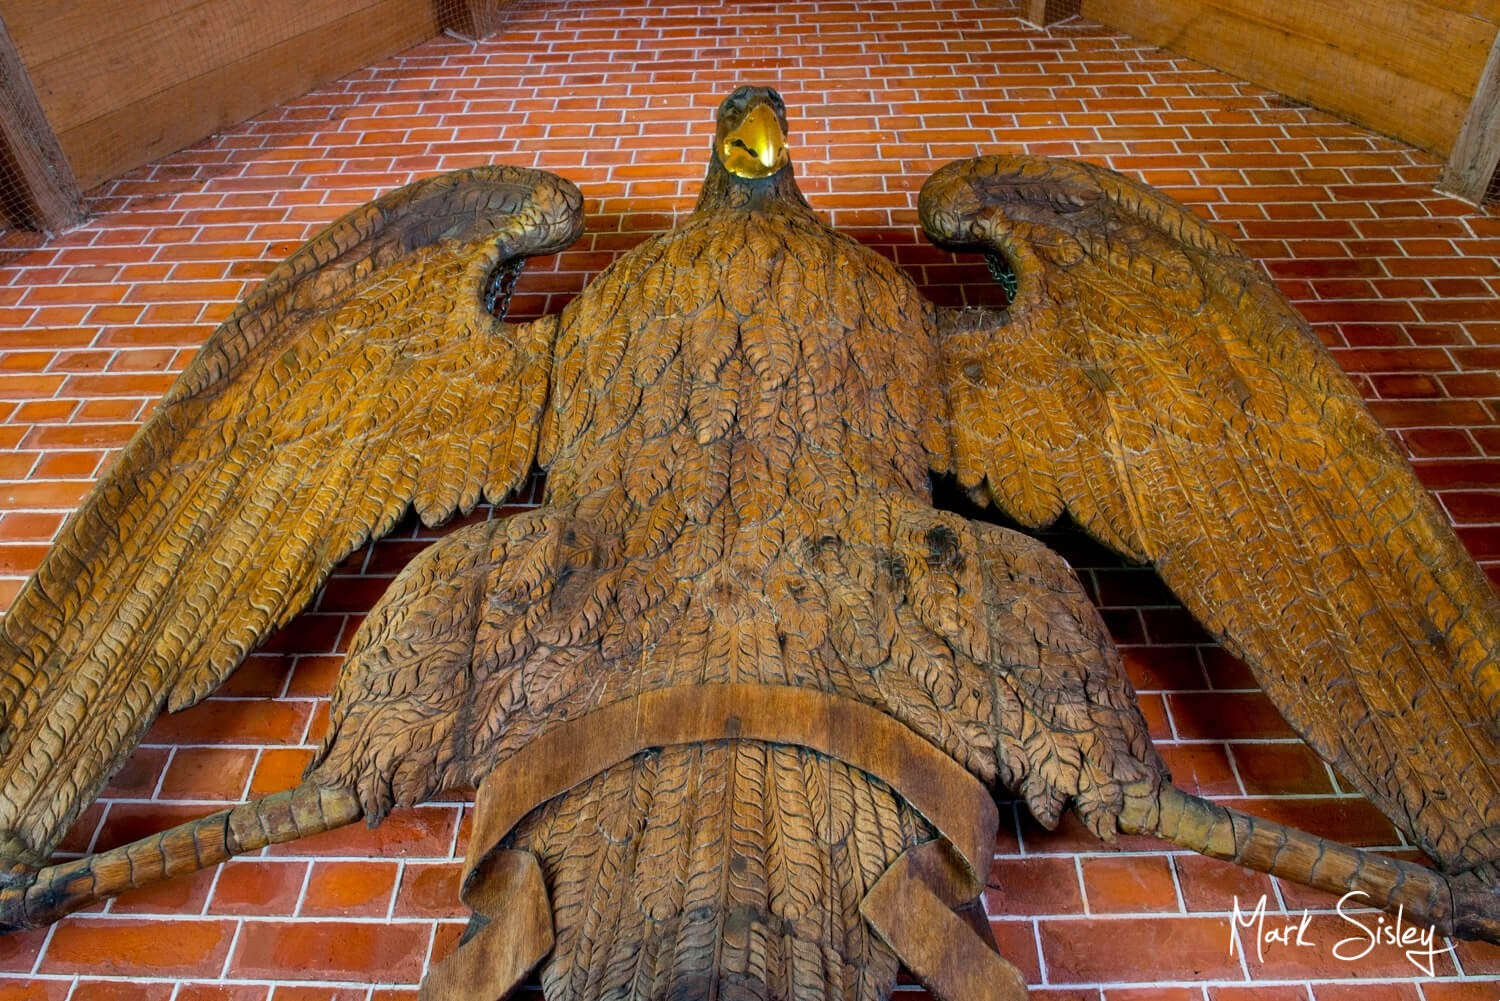 Dairy Waddesdon wedding day image of the carved Eagle in the entrance